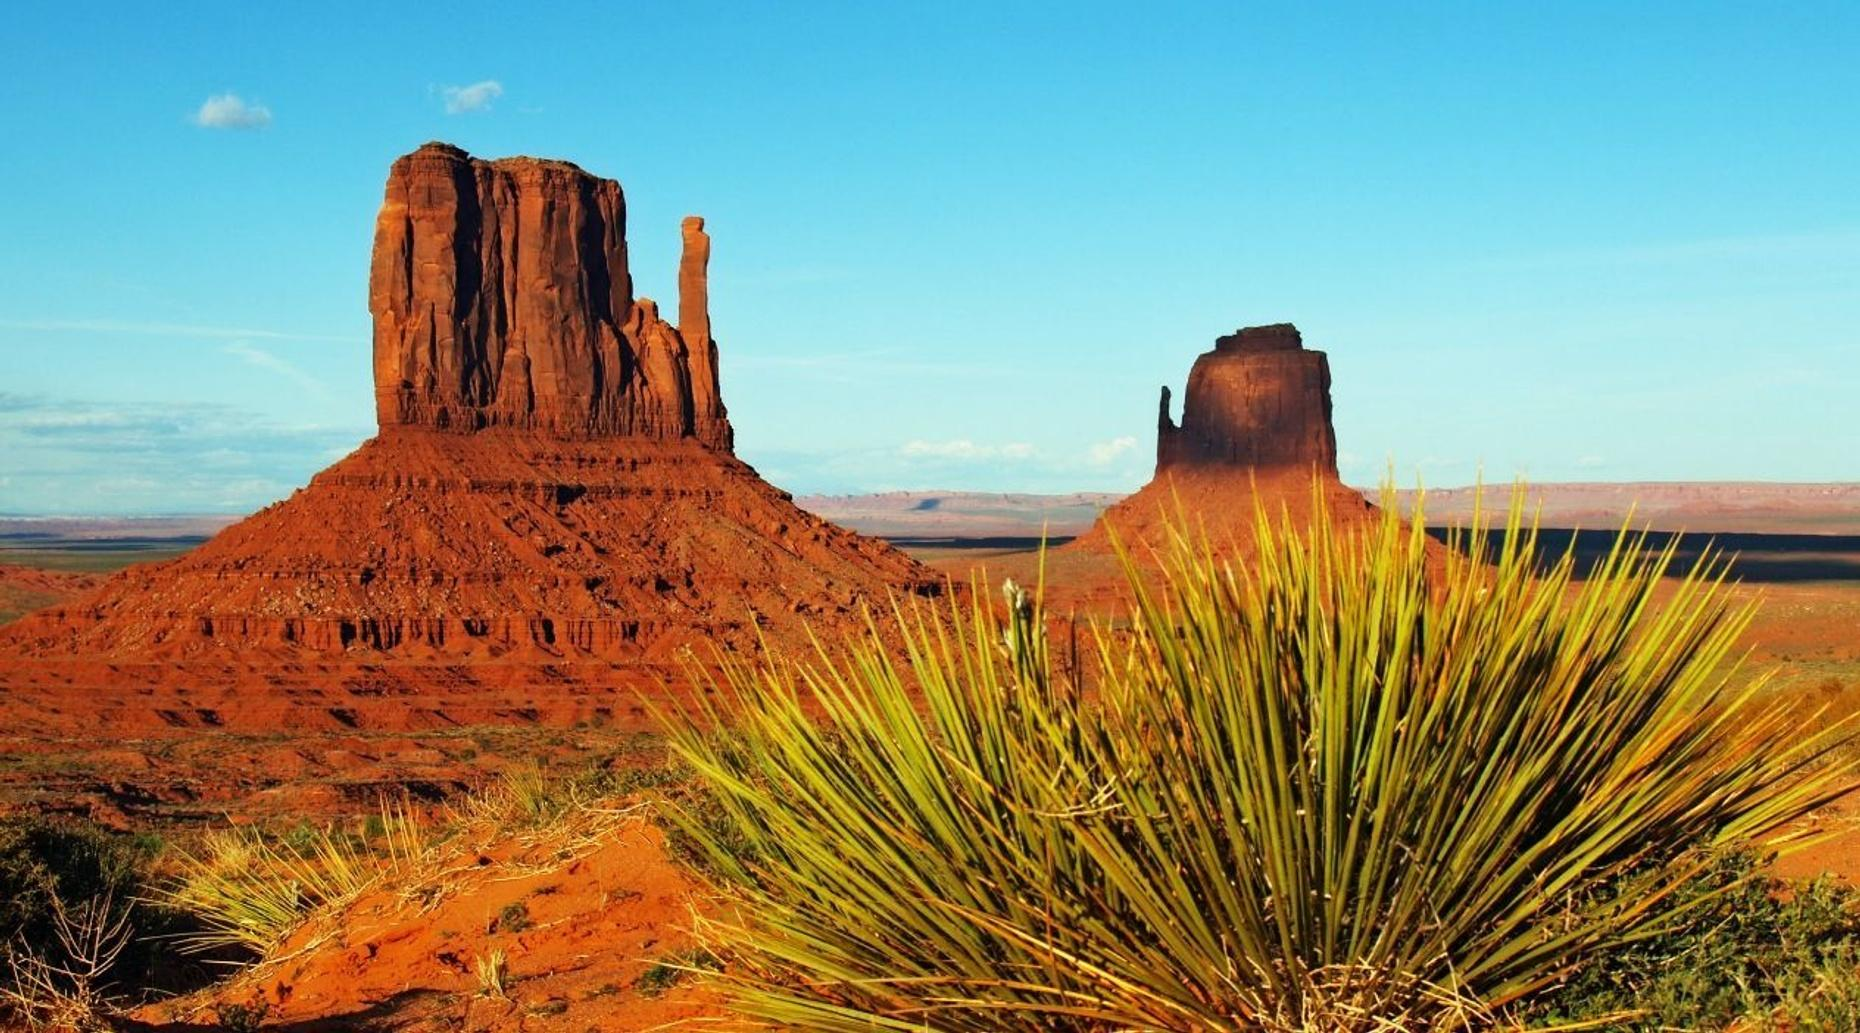 3-Hour Sunset Tour in Monument Valley